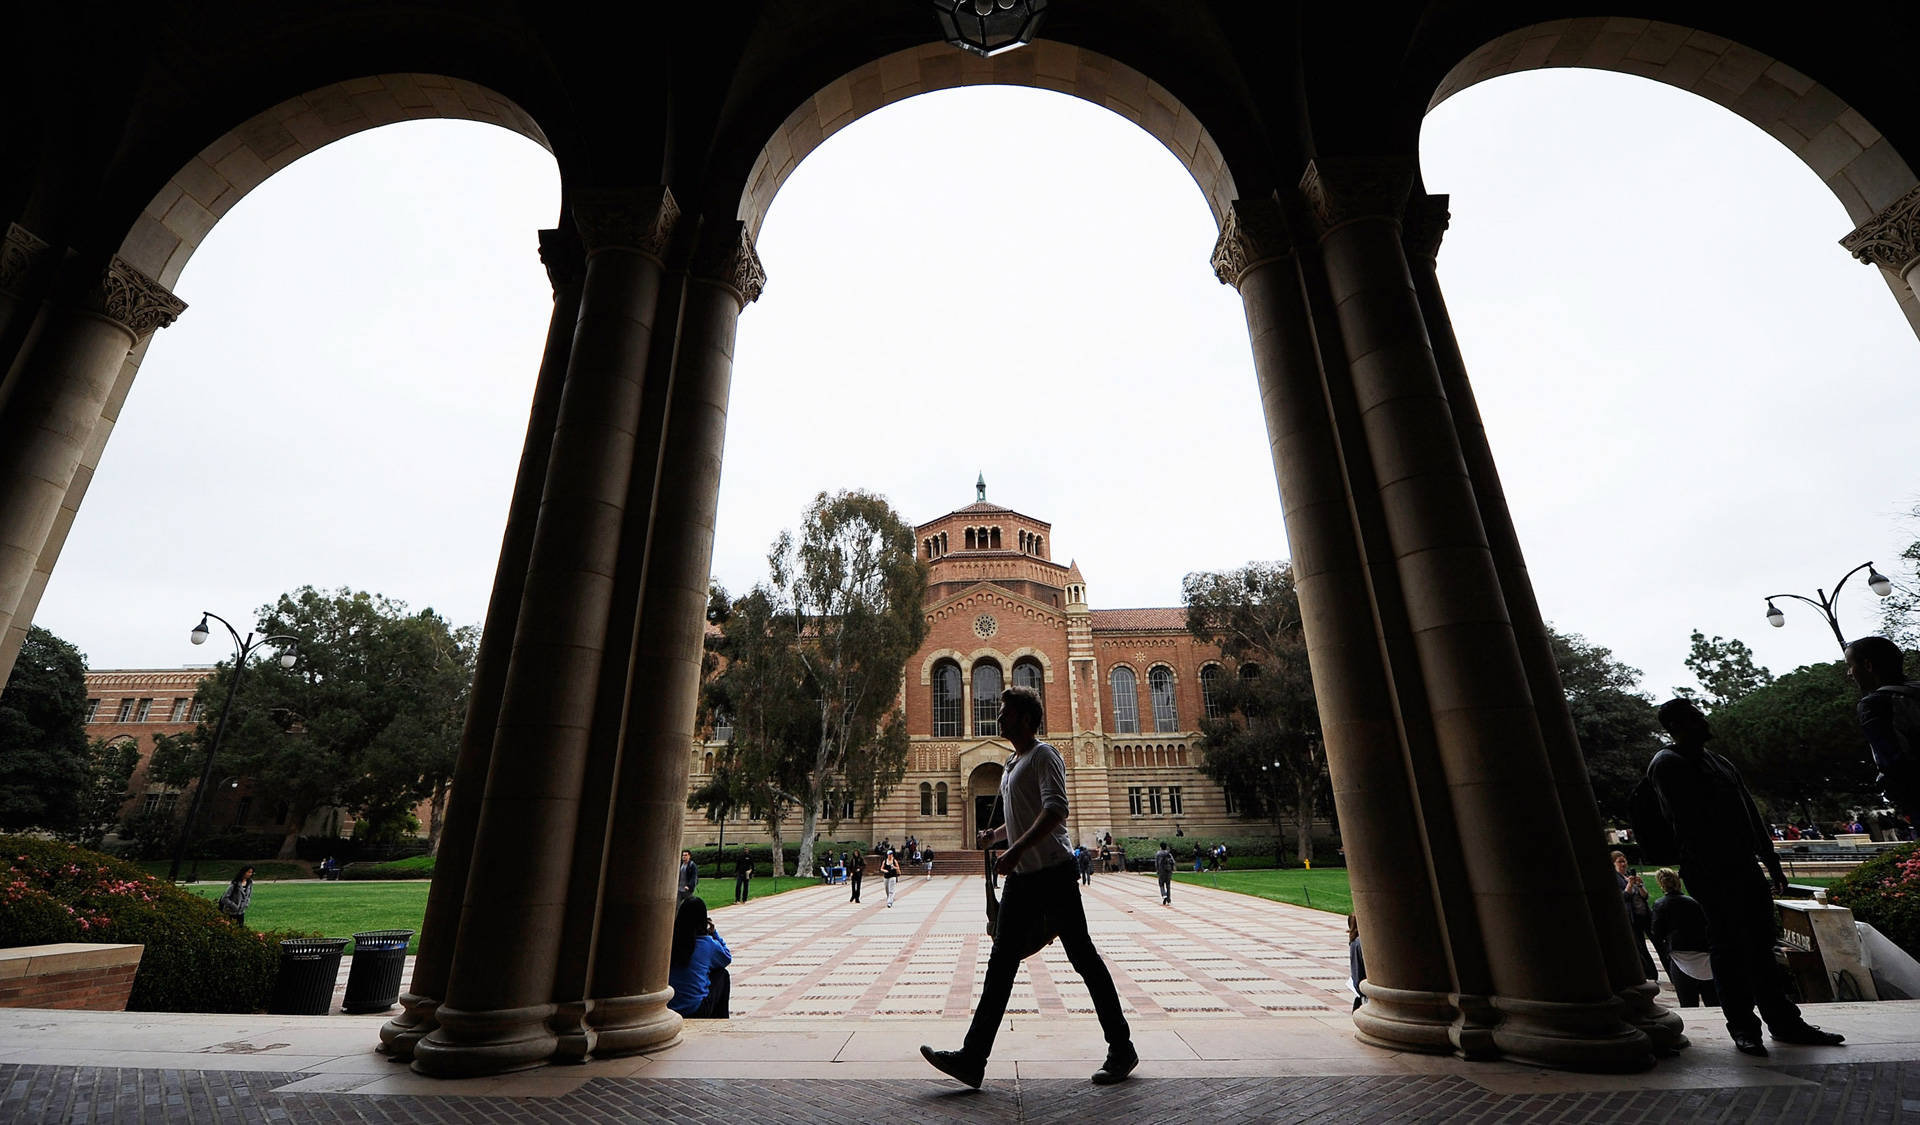 A student walks near Royce Hall on the campus of UCLA. Kevork Djansezian/Getty Images